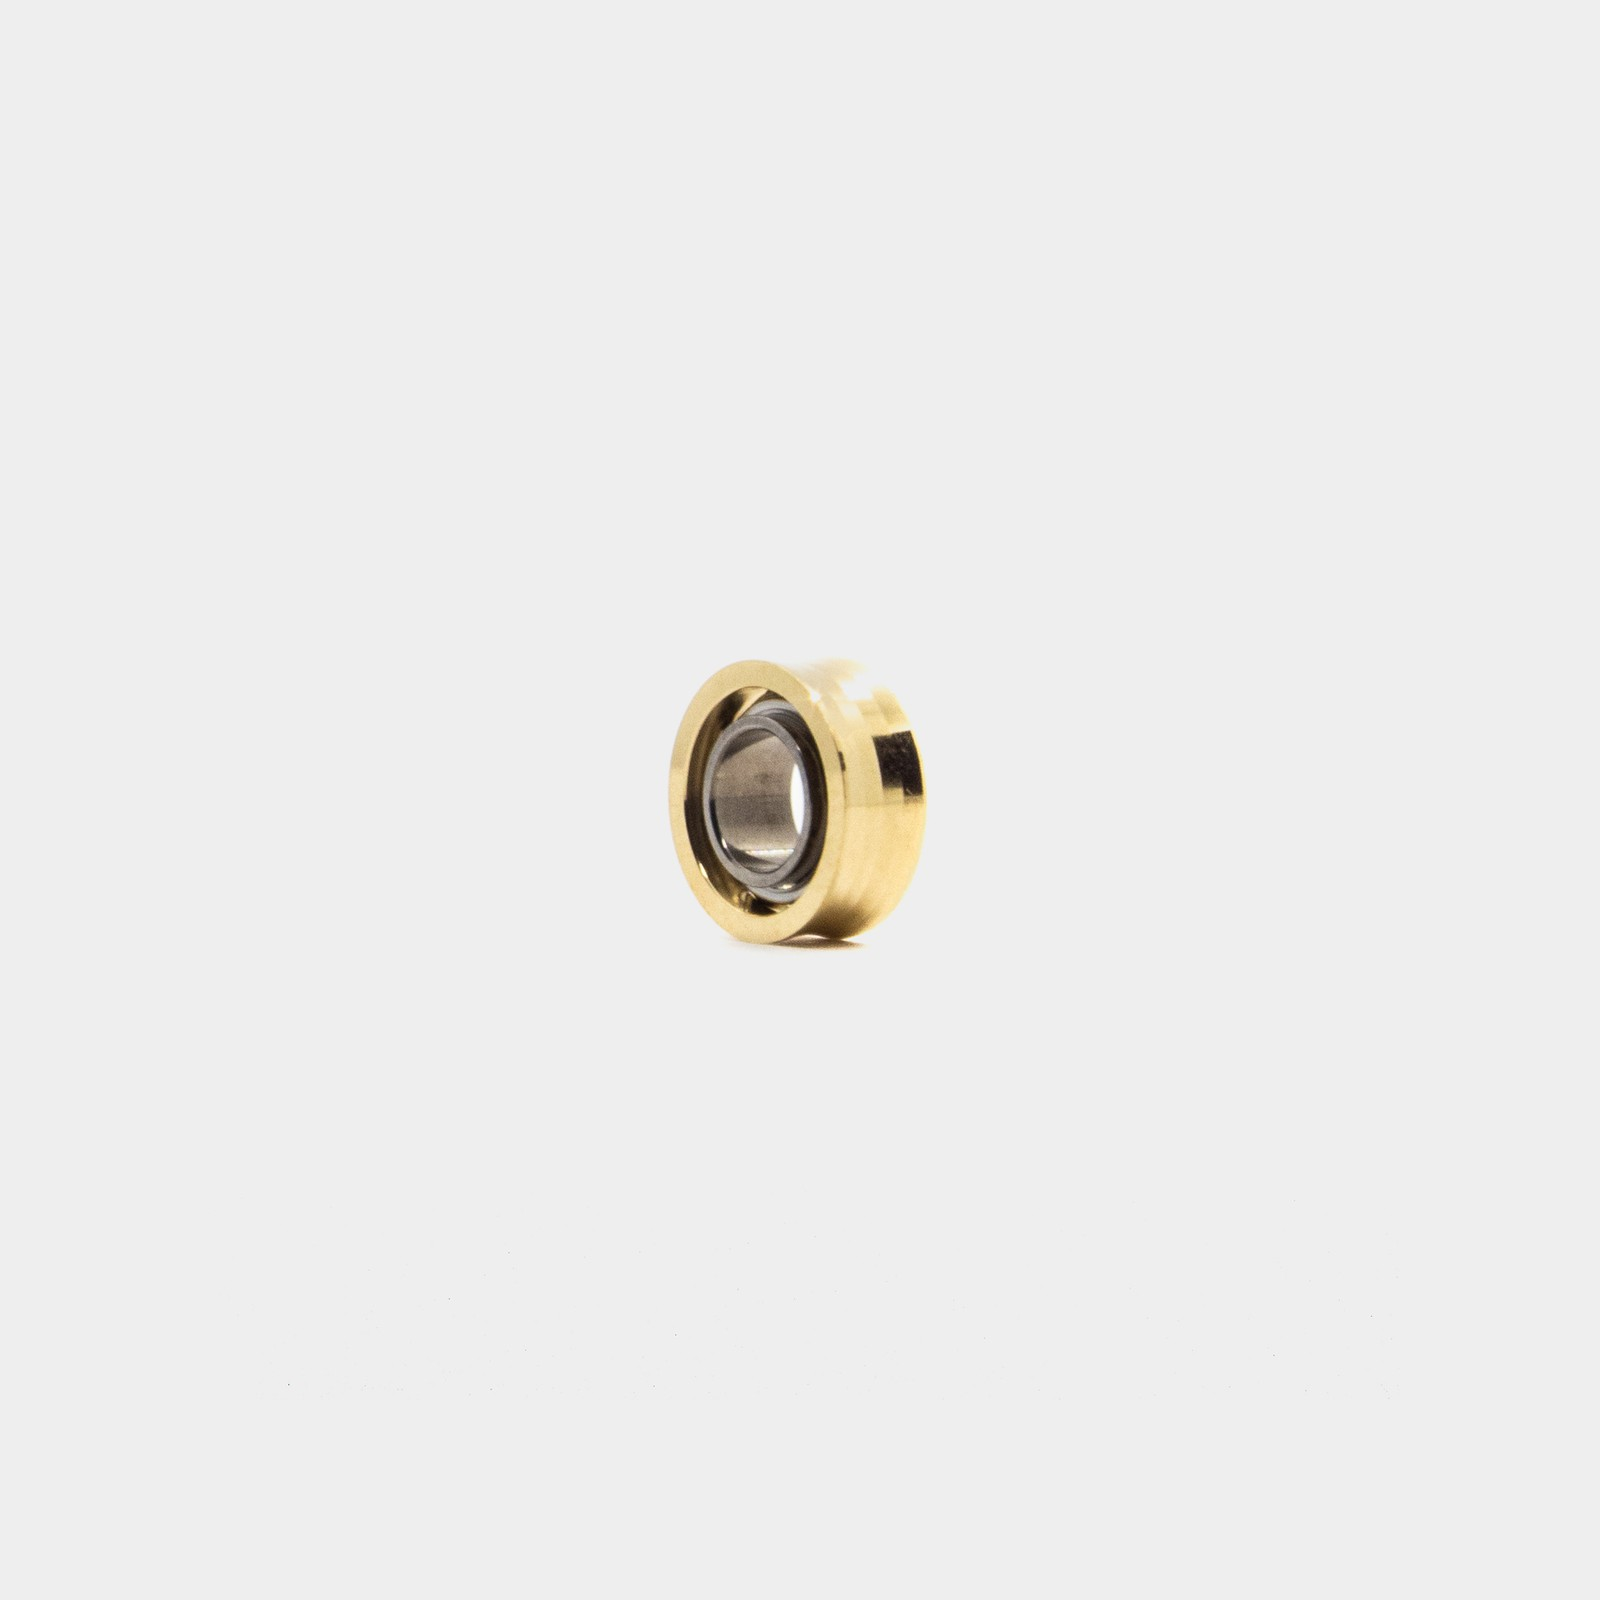 NSK Micro DS Bearing (Size C / Gold) by yoyorecreation